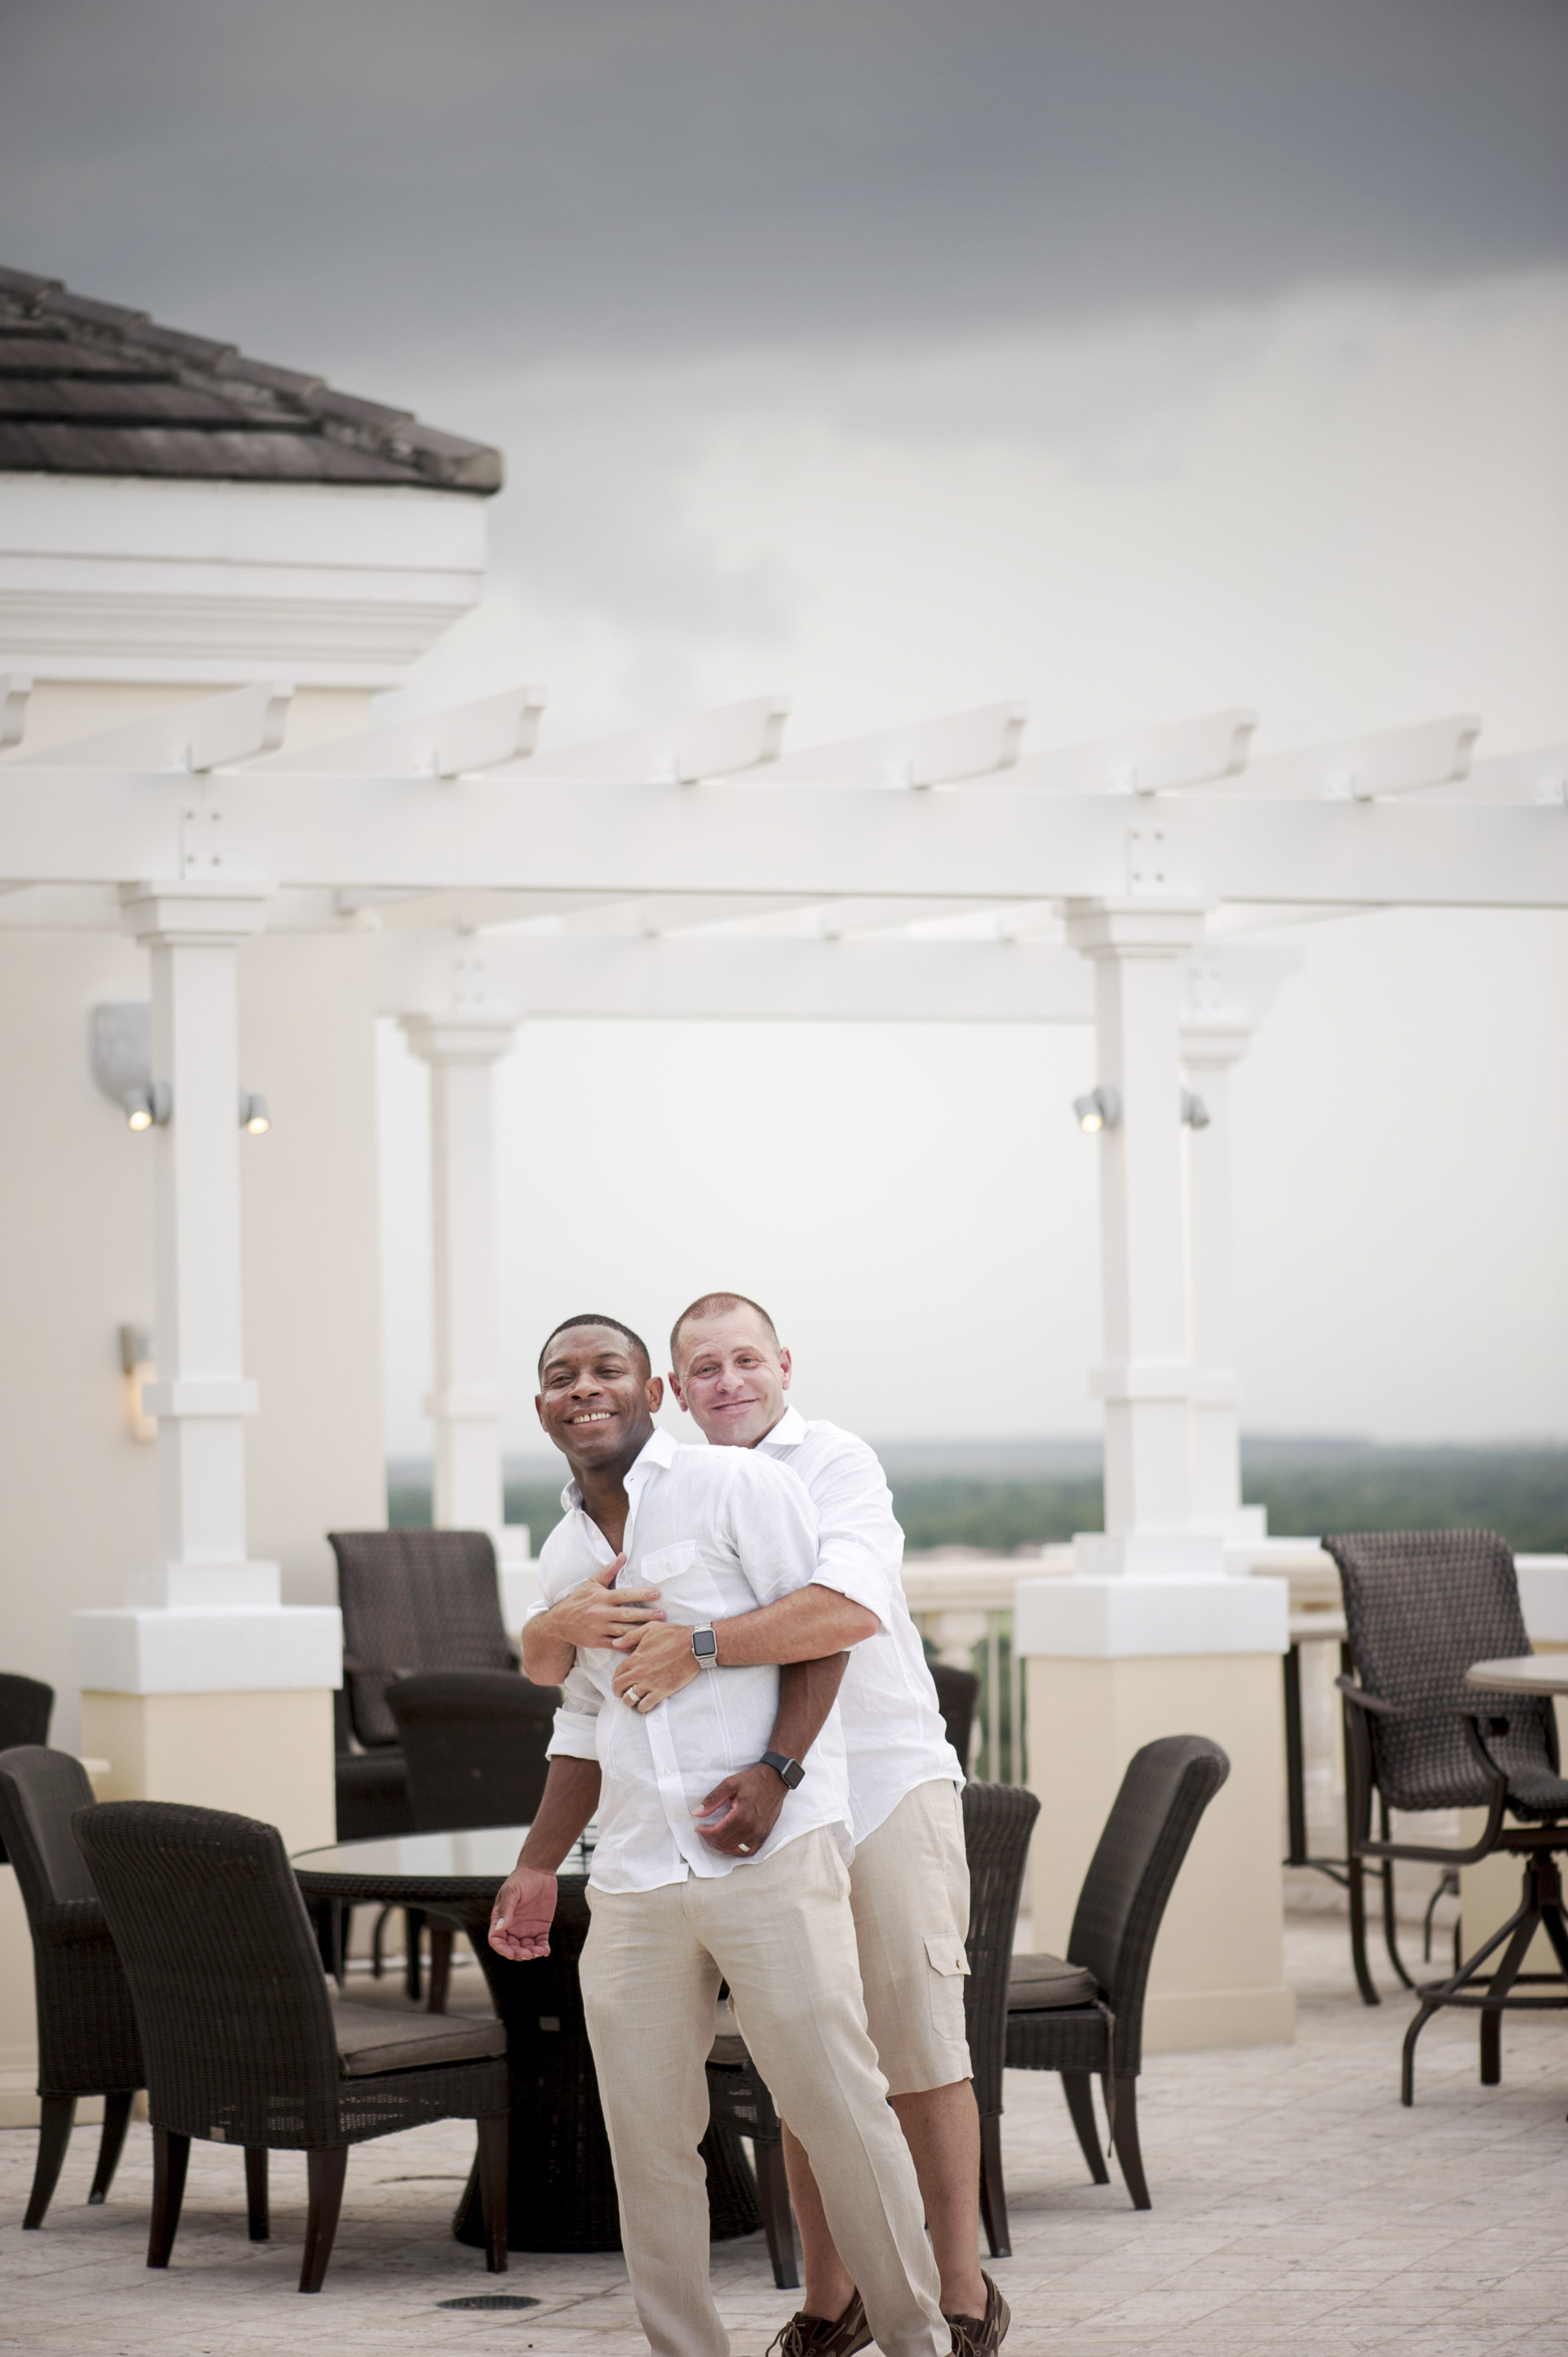 The Canovas Photography hugging in banquet hall